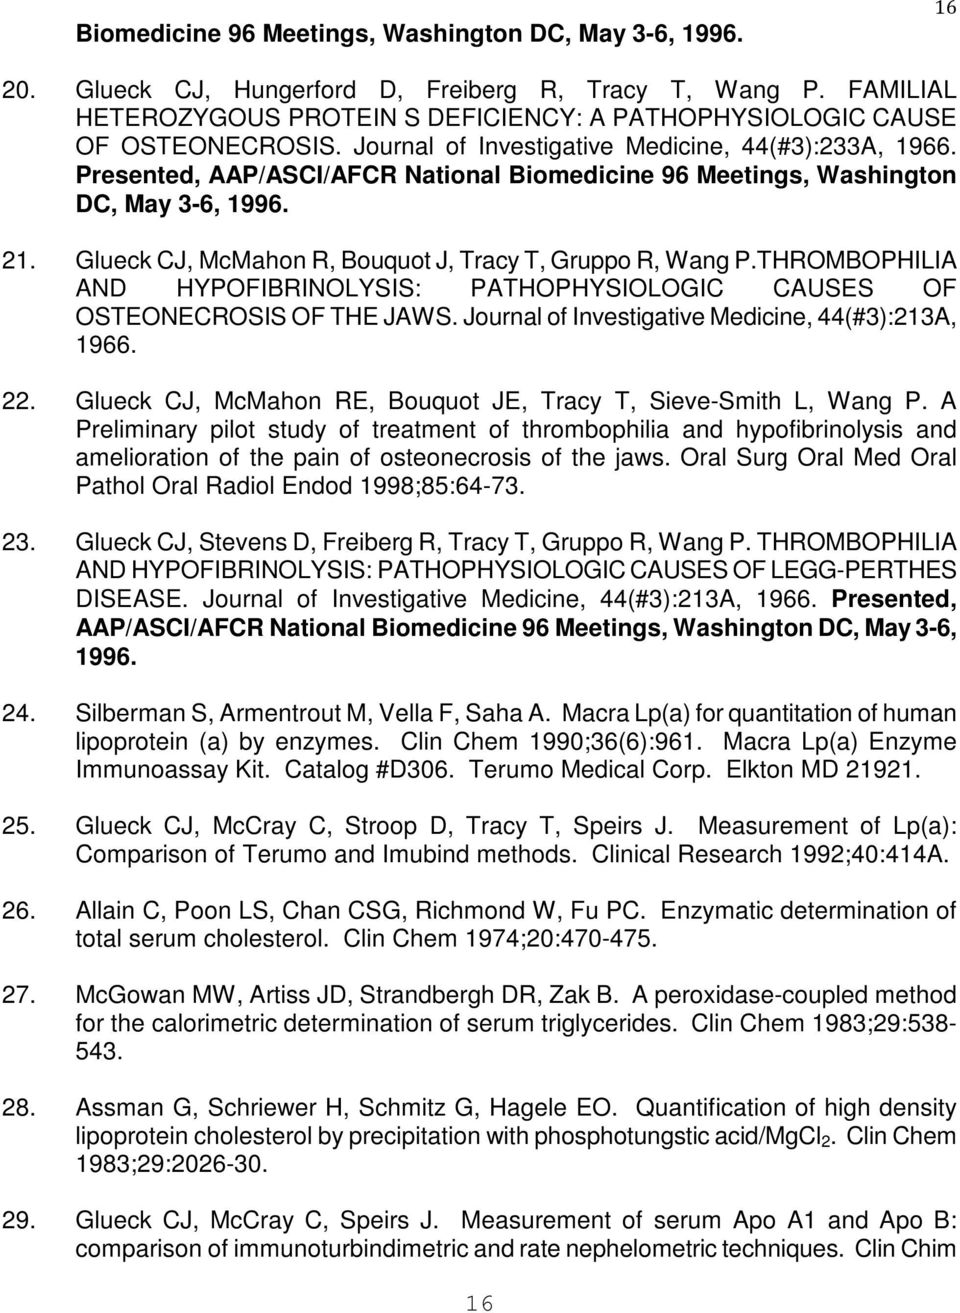 Presented, AAP/ASCI/AFCR National Biomedicine 96 Meetings, Washington DC, May 3-6, 1996. 21. Glueck CJ, McMahon R, Bouquot J, Tracy T, Gruppo R, Wang P.